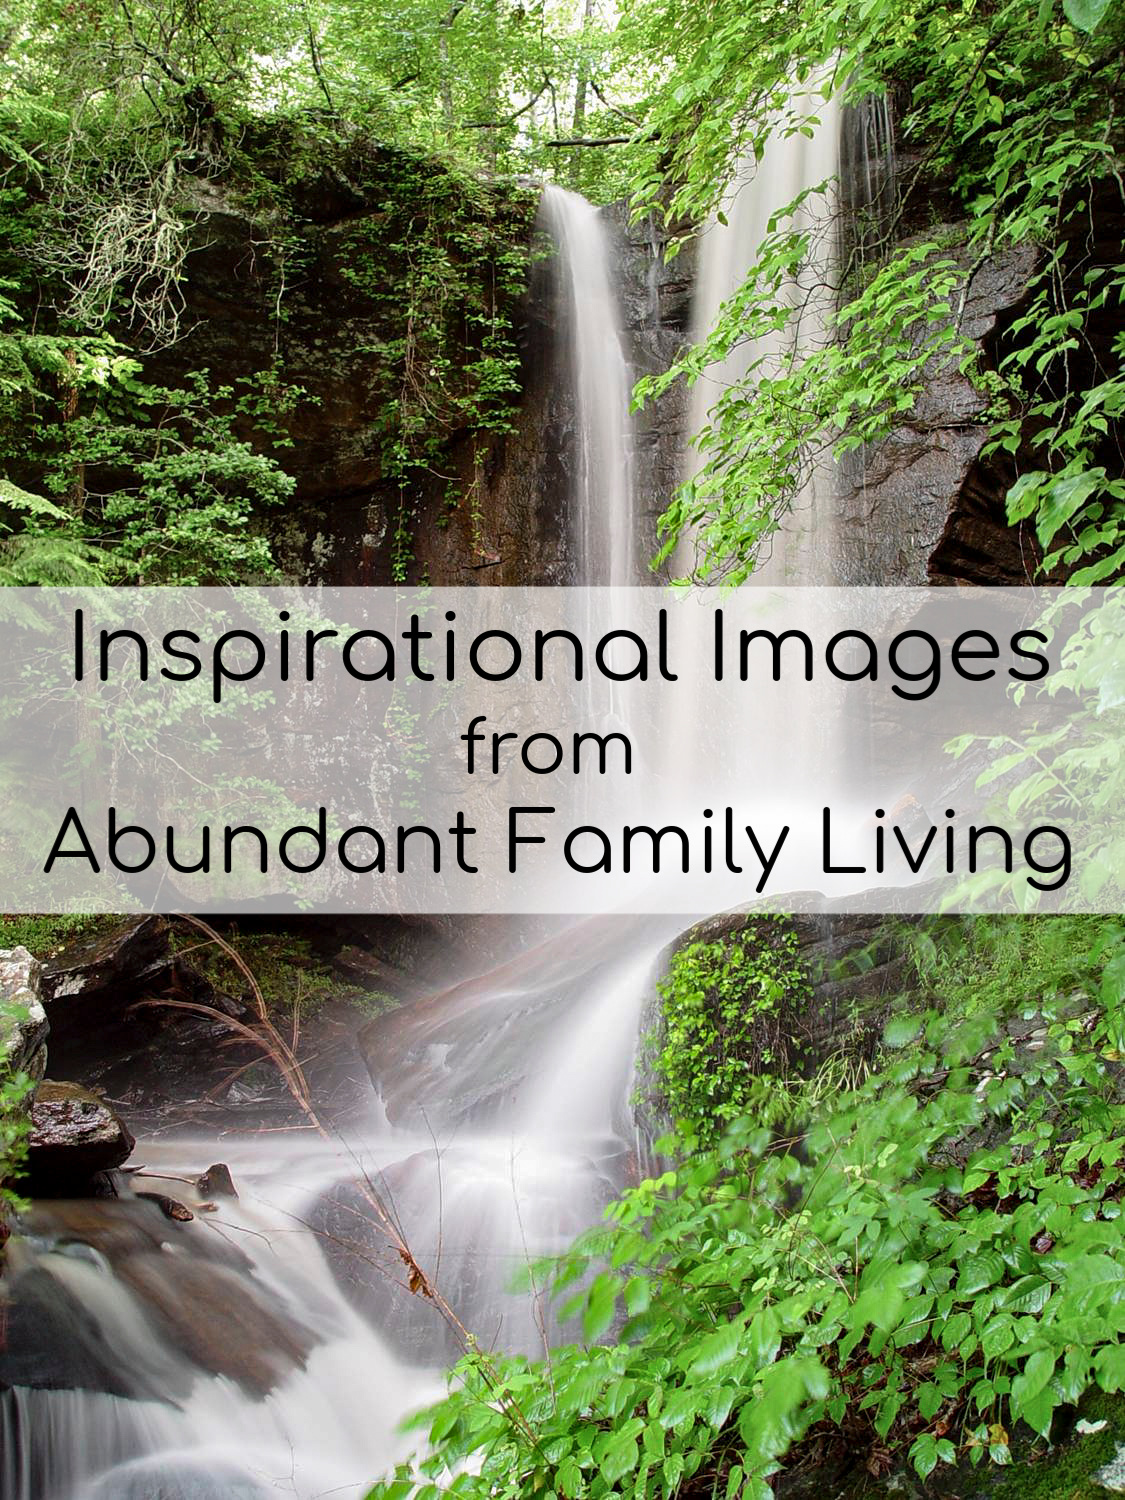 Inspirational Images from Abundant Family Living